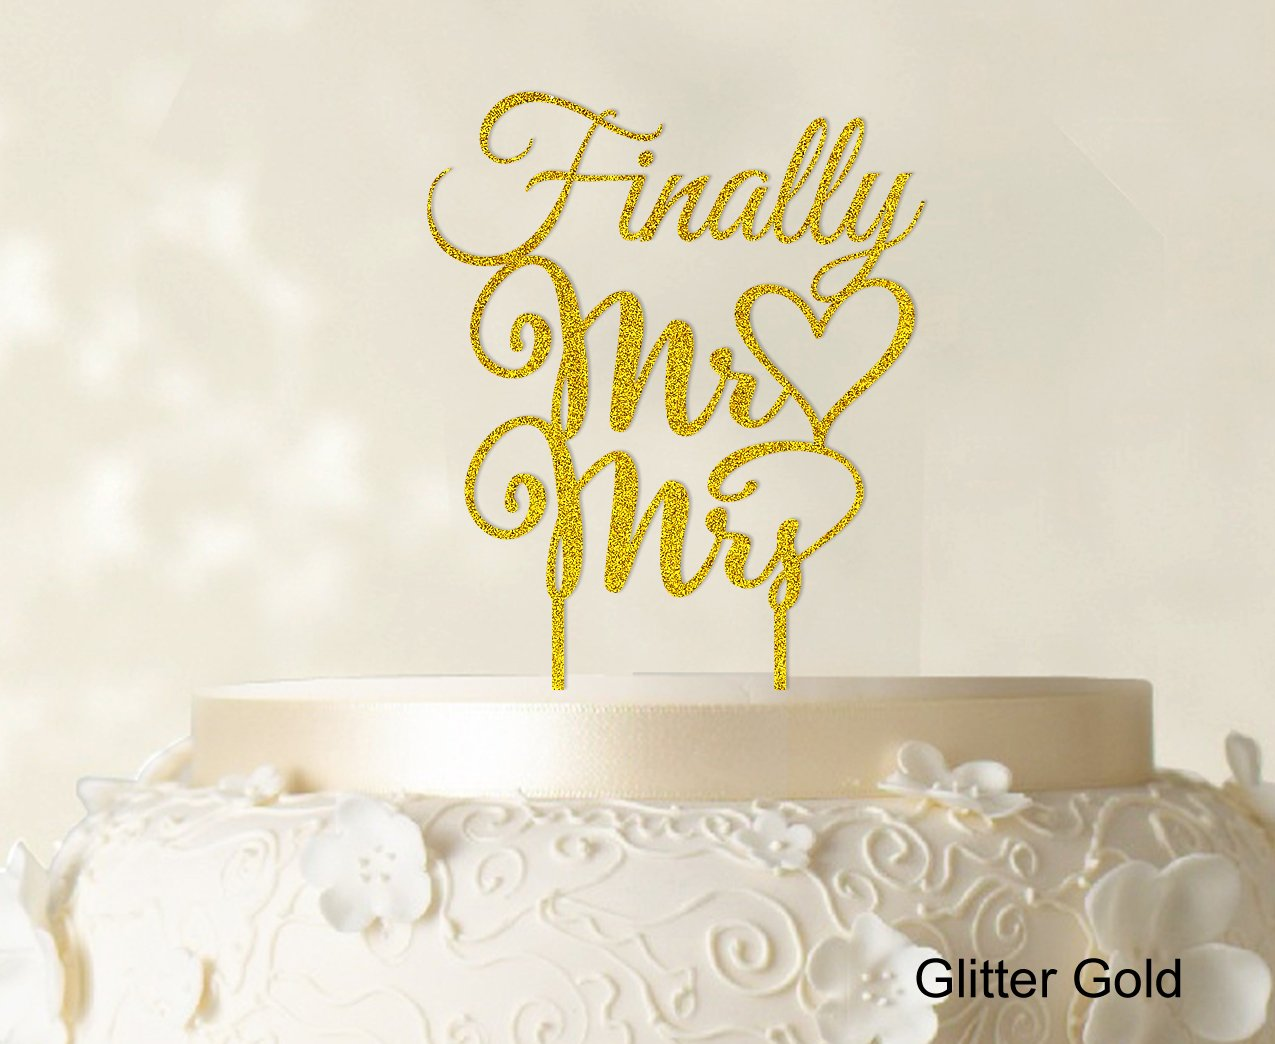 ''Finally Mr And Mrs'' Wedding Cake Topper Personalized Custom Name Cake Toppers Color Option Available 5''-7'' Inches Wide